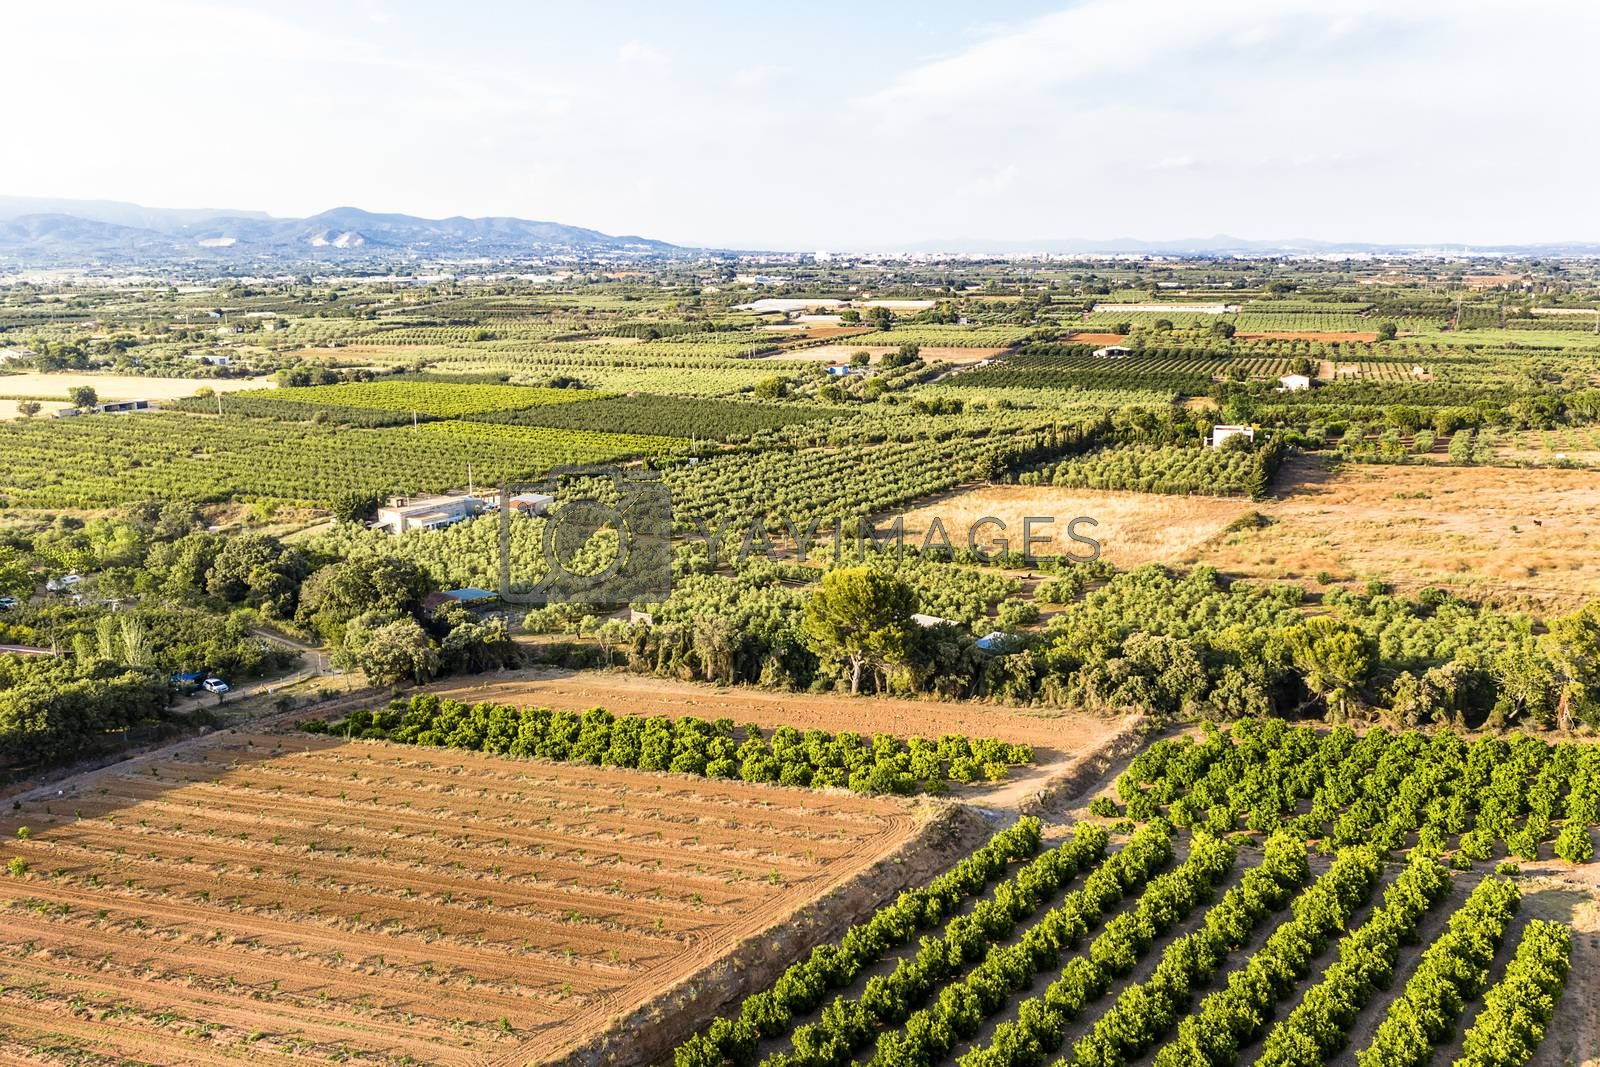 green and yellow fields in Tarragona from above, agricultural industry aerial view